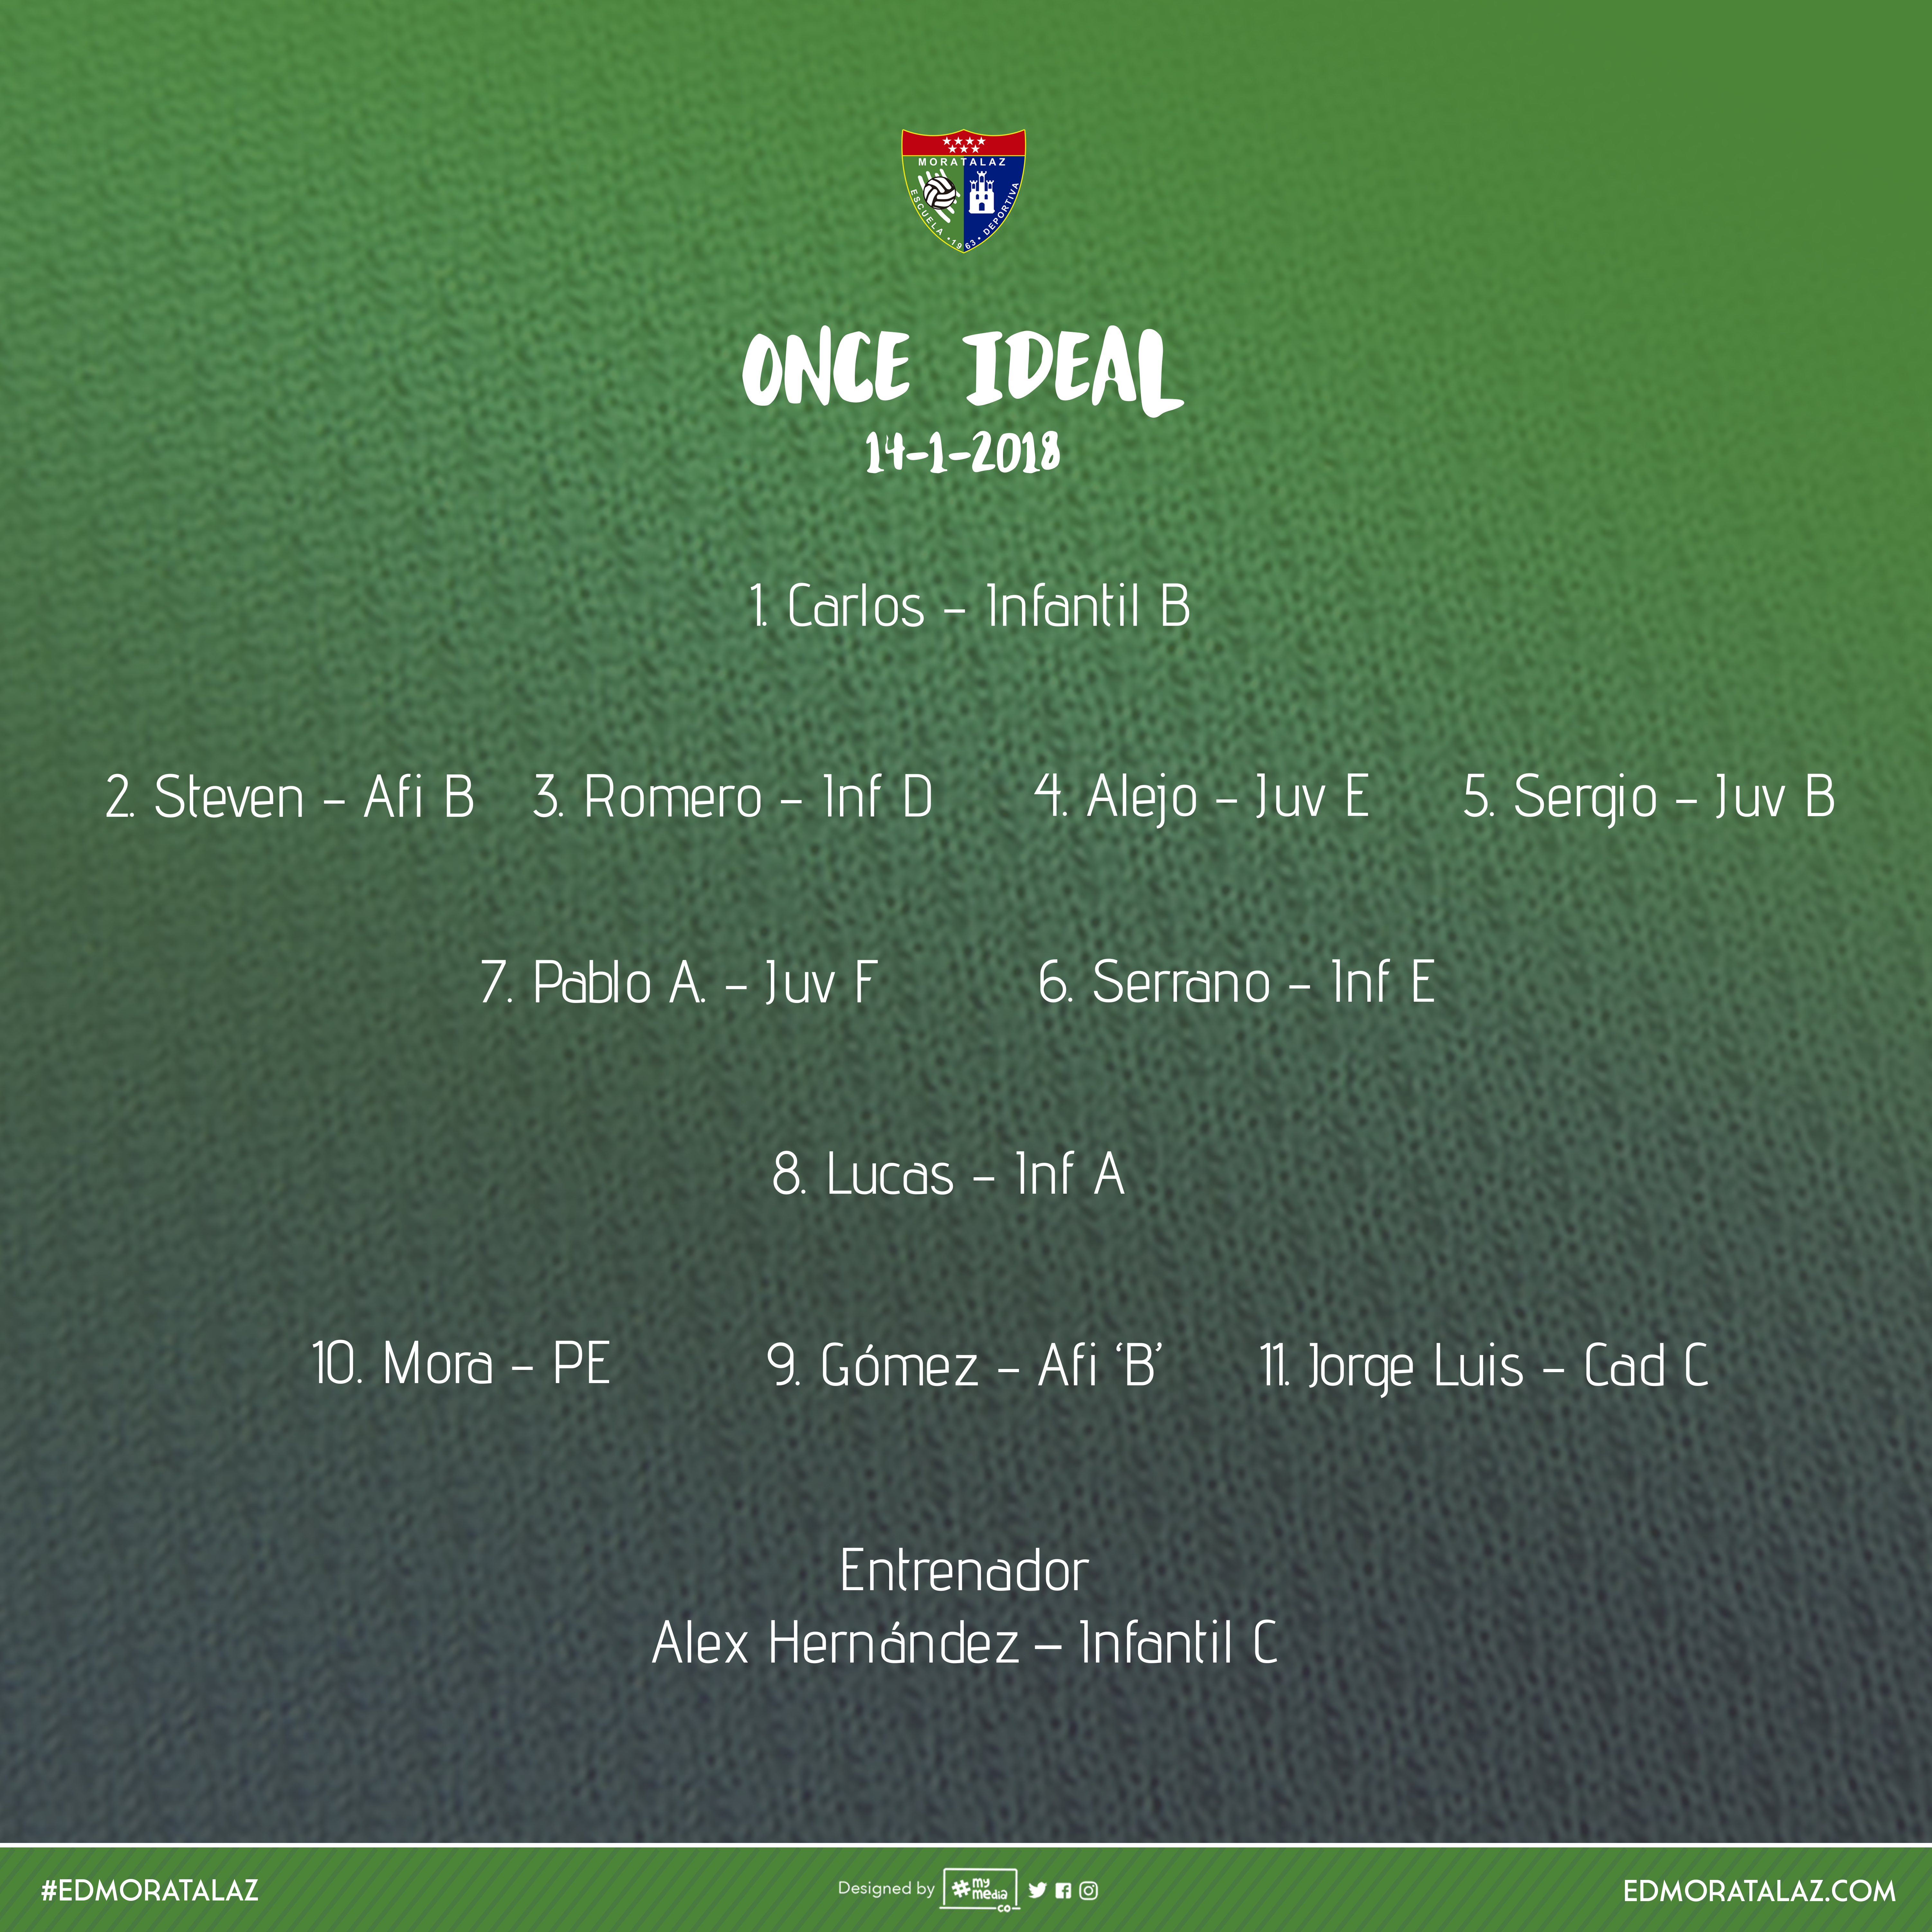 Once ideal del fin de semana 13-14 de enero, Temporada 2017/18